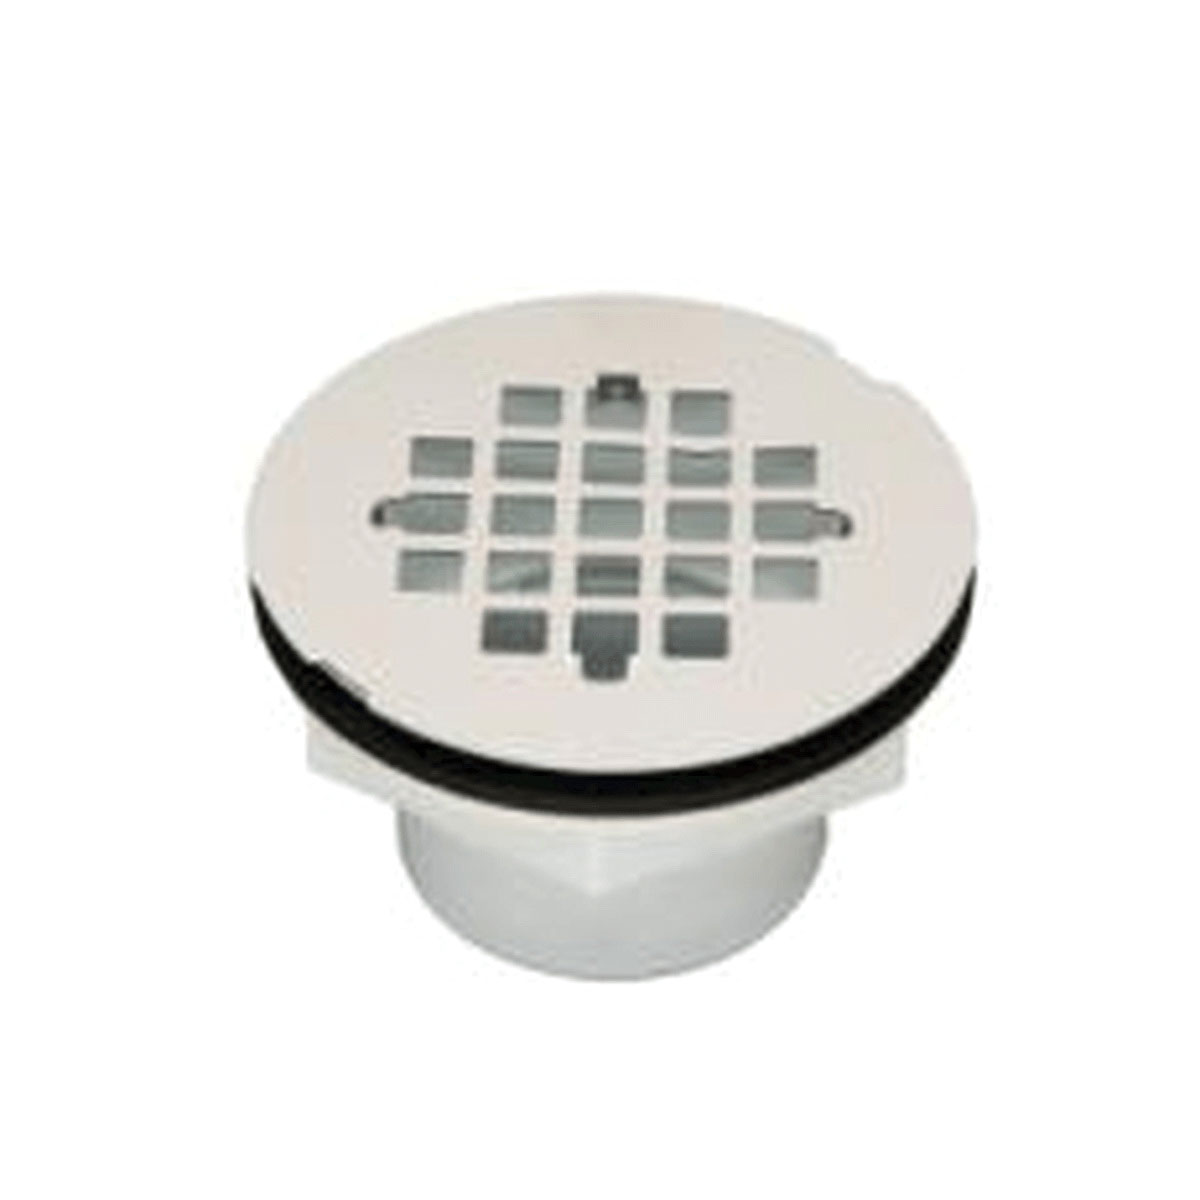 Matco-Norca™ SDP2WSW Plastic/Stainless Steel White Shower Drain with Strainer, 2 in, Solvent Weld